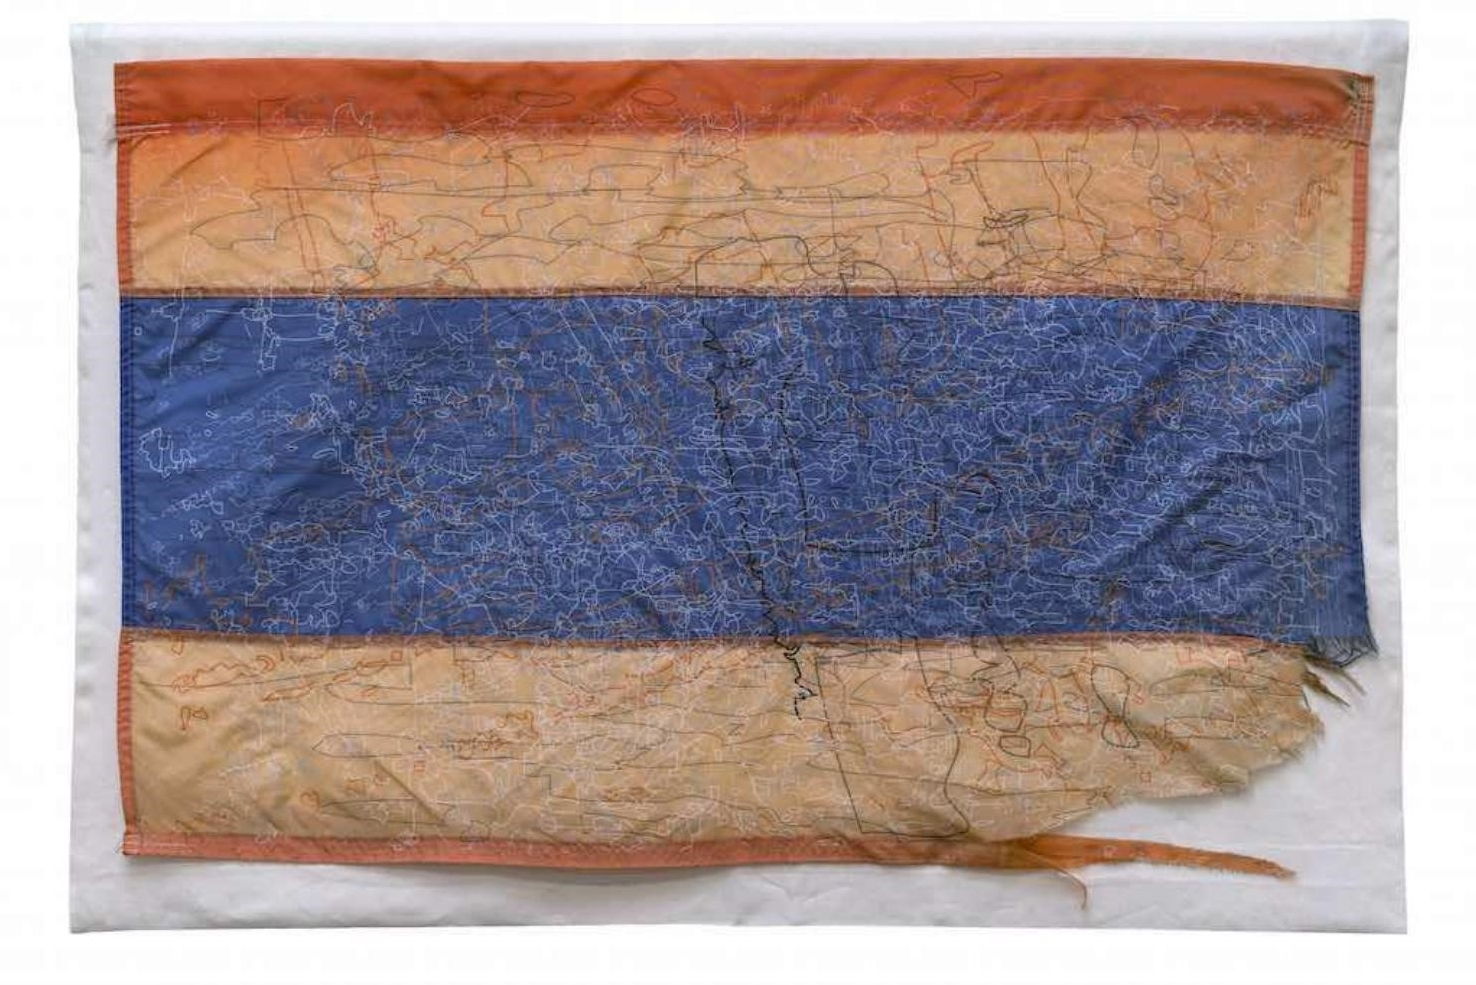 Guillermo Galindo.  Siguiendo Los Pasos del Niño Perdido , 2017; Acrylic on beacon flags used by humanitarian aid group Water Stations; 30 x 47 in. Courtesy of the Artist, Gallery Wendi Norris, San Francisco, and Magnolia Editions, San Francisco